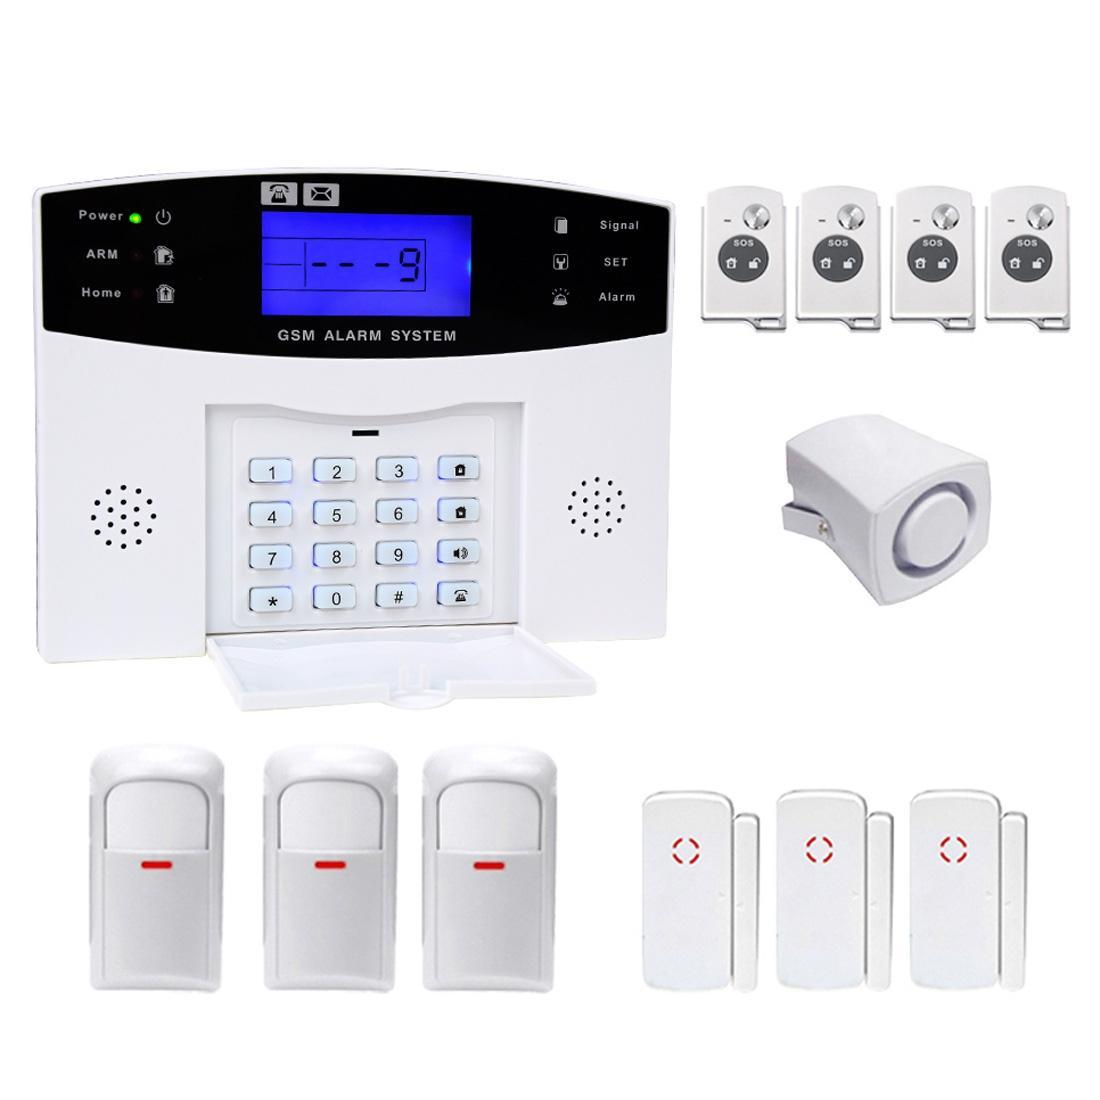 YA-500-GSM-25 12 in 1 Kit Wireless 433MHz GSM SMS Security Home House Burglar Alarm System with LCD Screen